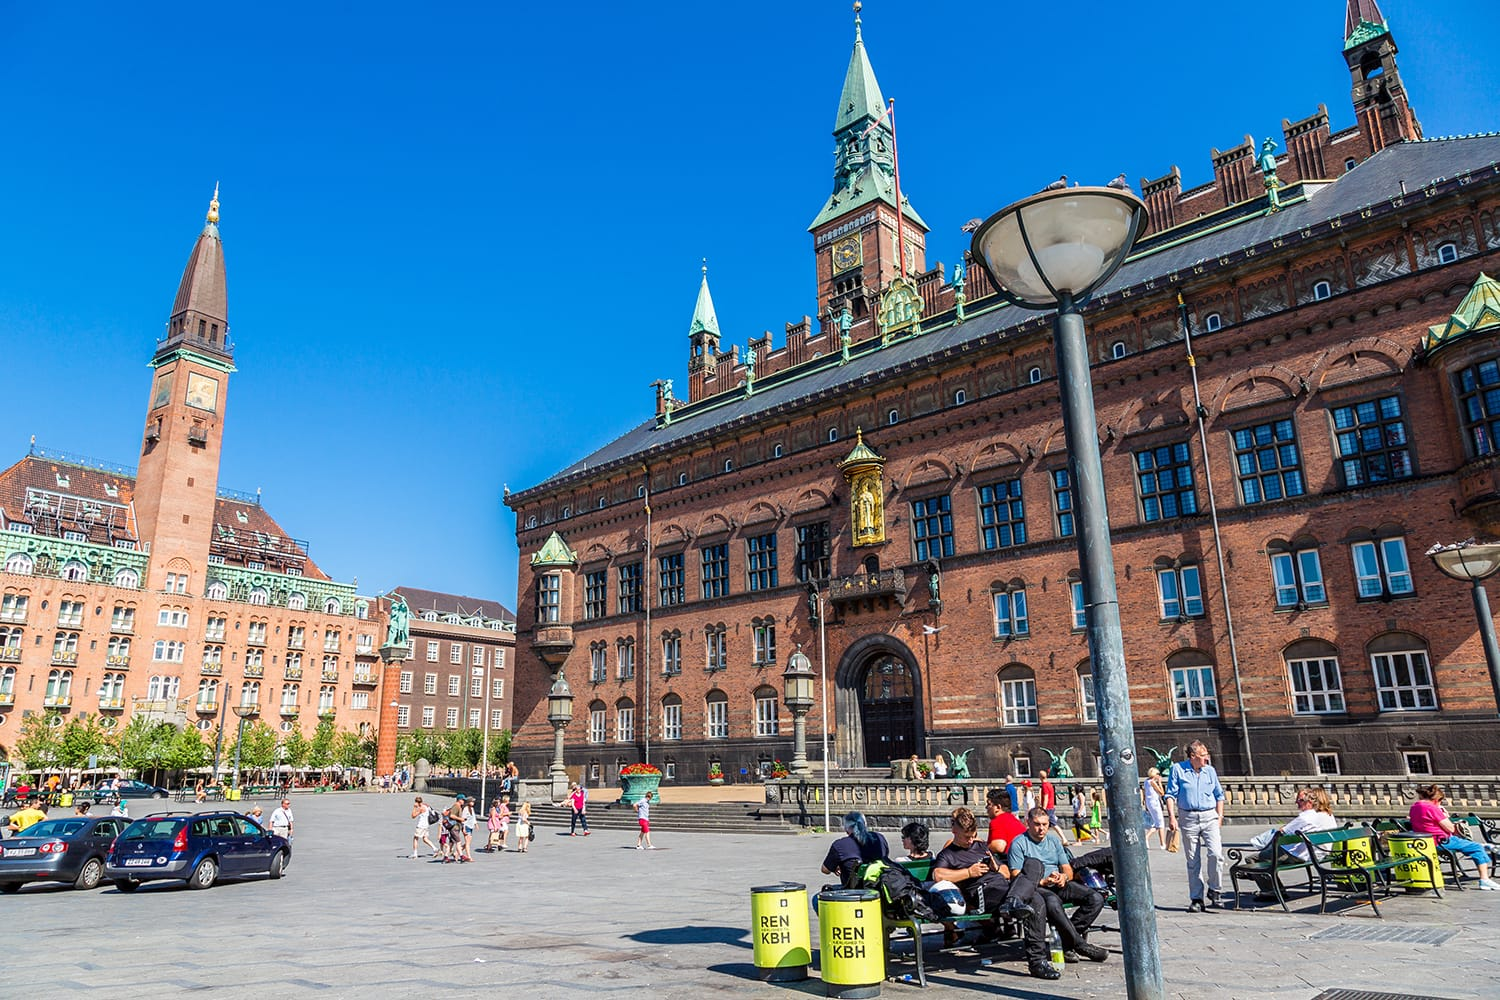 Copenhagen City Hall is the headquarters of the municipal council as well as the Lord mayor of the Copenhagen, Denmark